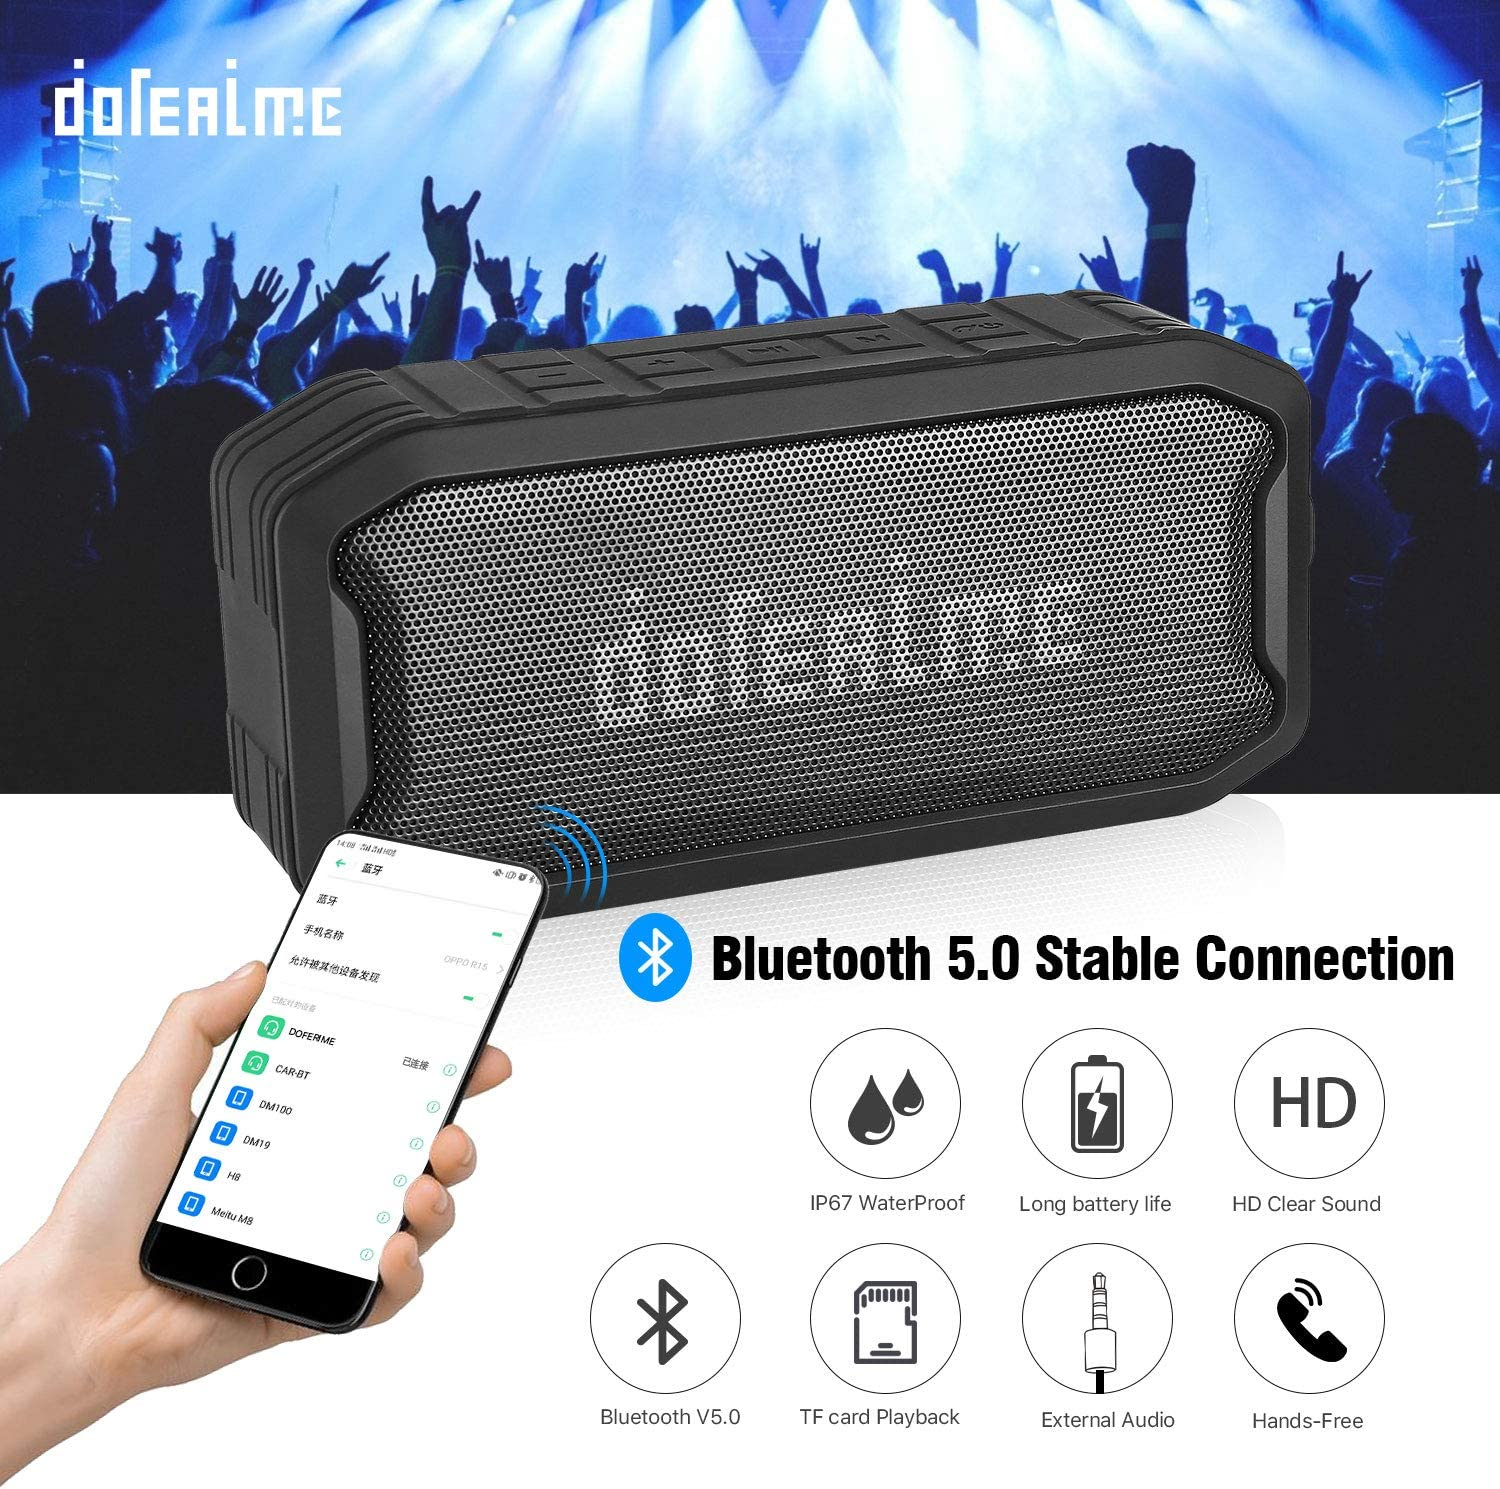 Bluetooth Speakers Outdoor Wireless Portable Speaker,IP67 Waterproof,16-Hour Playtime,Bluetooth 5.0,Clear Stereo Sound Rich Bass,Perfect for Camping,Beach,Sports,Pool Party,Shower